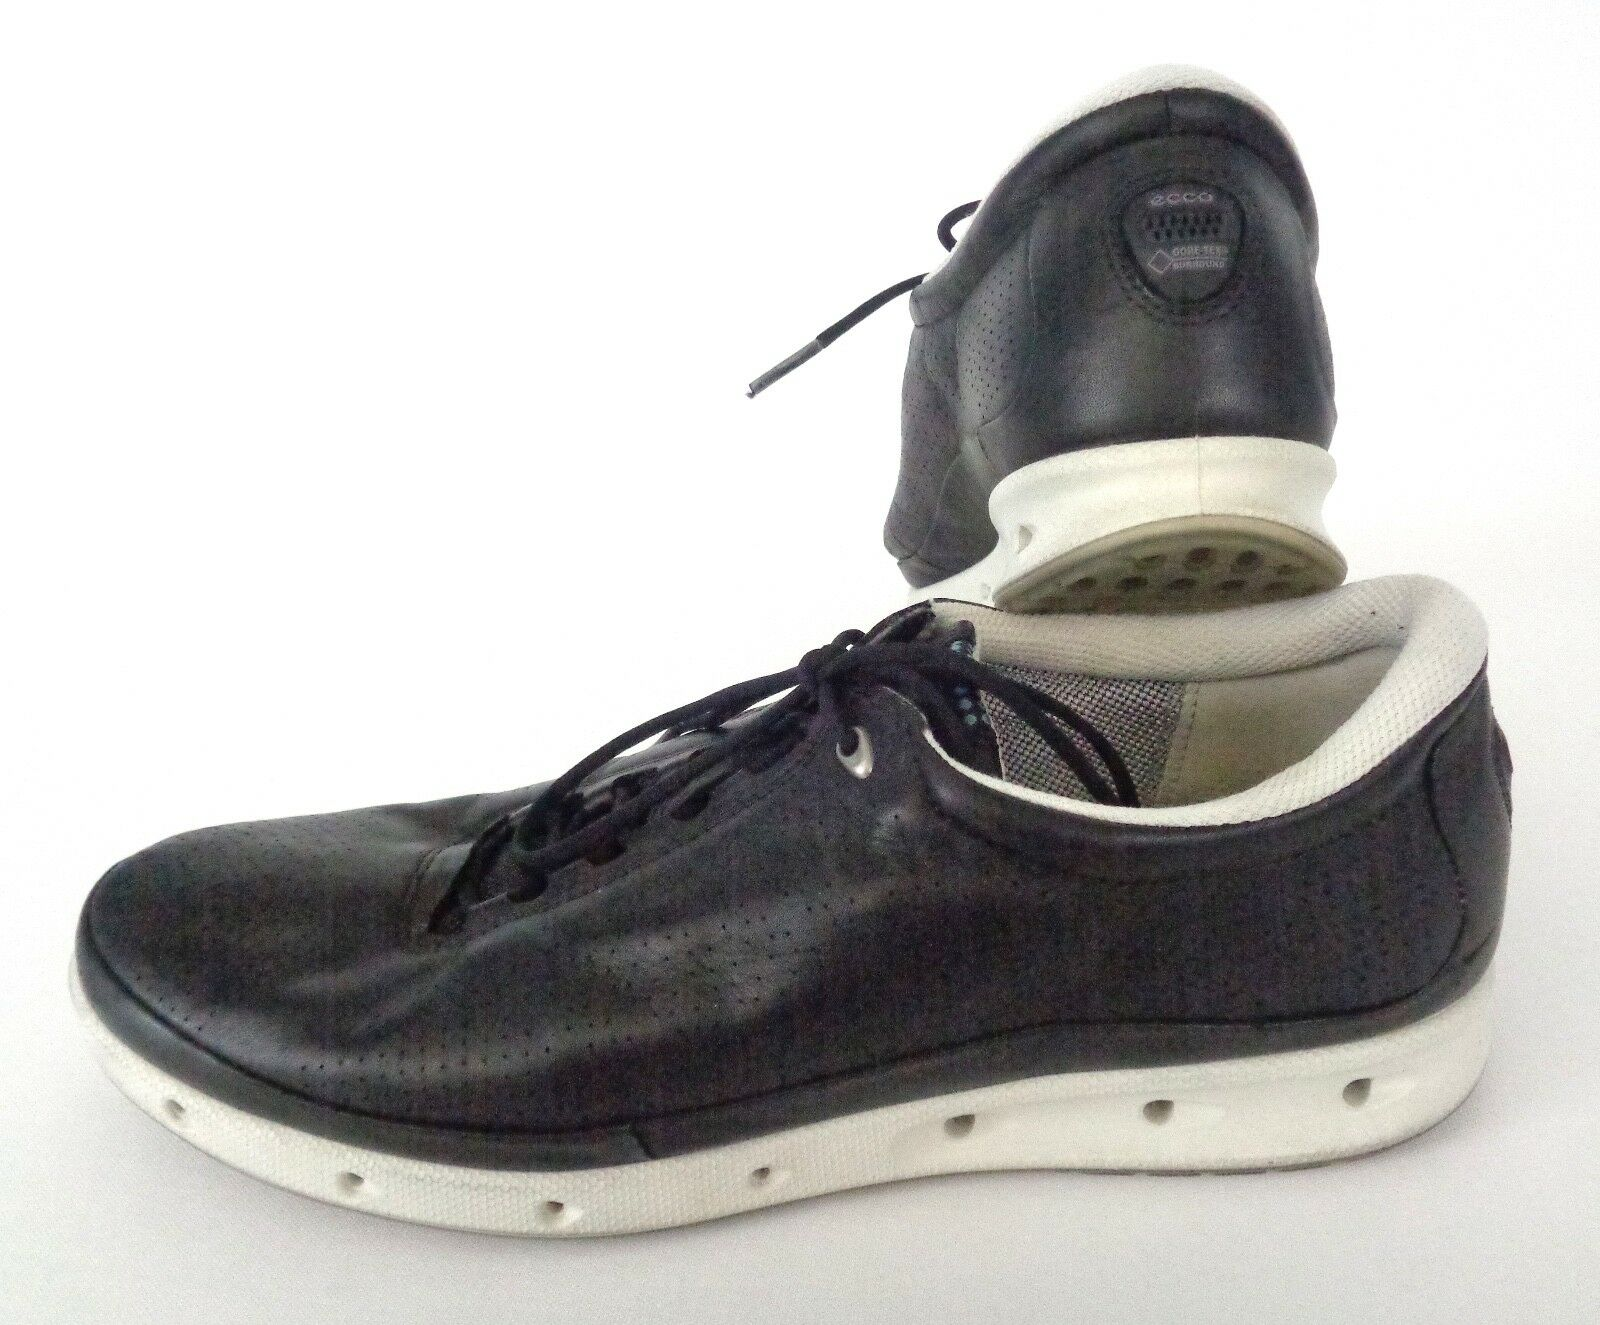 ECCO COOL GTX Casual Sz 42 10-10.5 US Casual GTX Athletic Walking Shoes Black Yak Leather 0cacf4